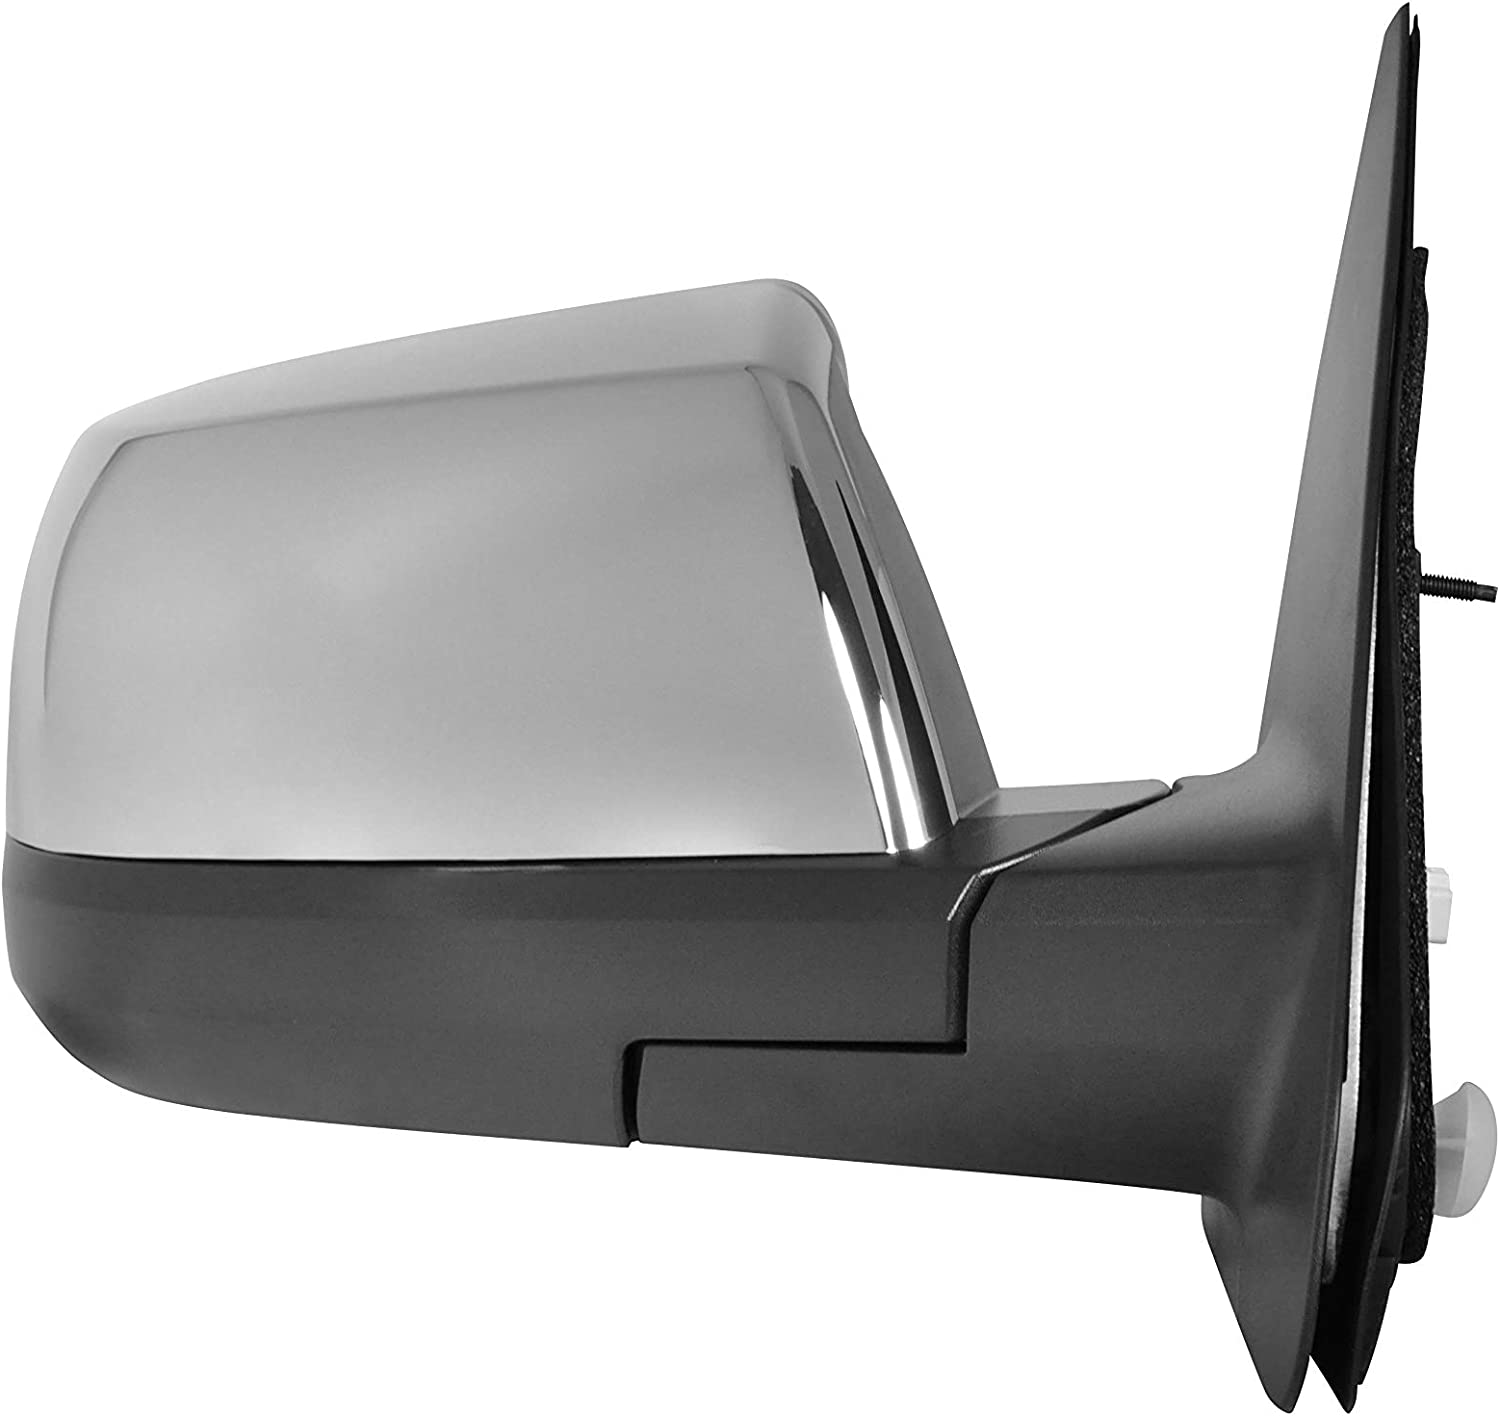 Price reduction Passenger Side Chrome Power Operated Latest item Folding Mirror Heated